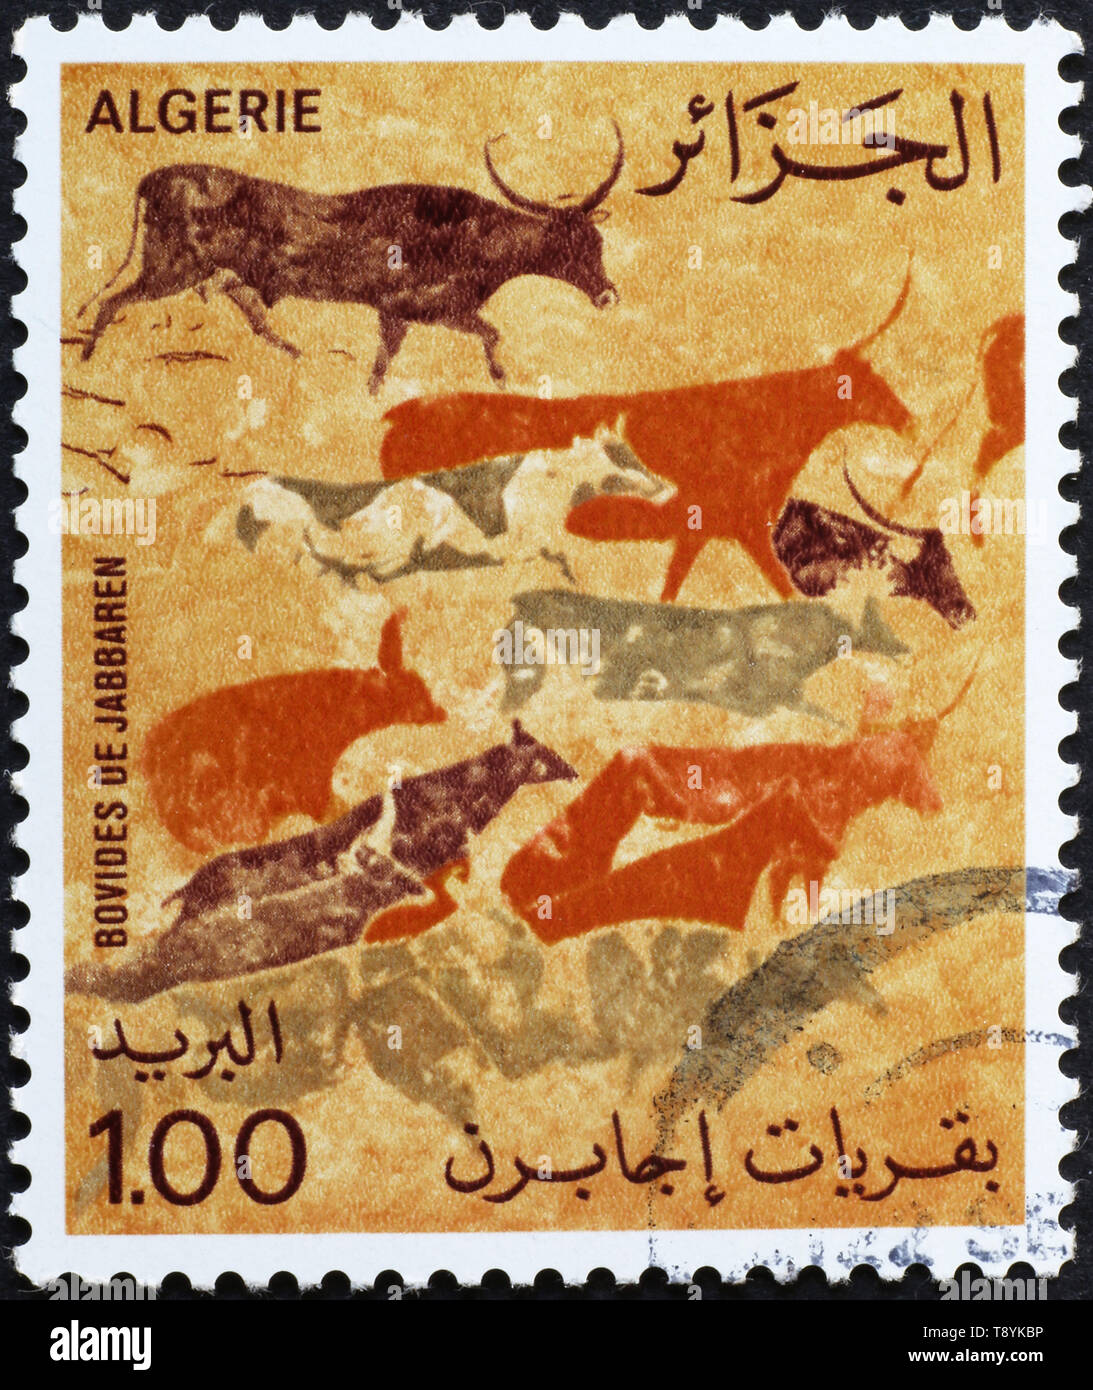 Prehistoric depictions on algerian postage stamp - Stock Image